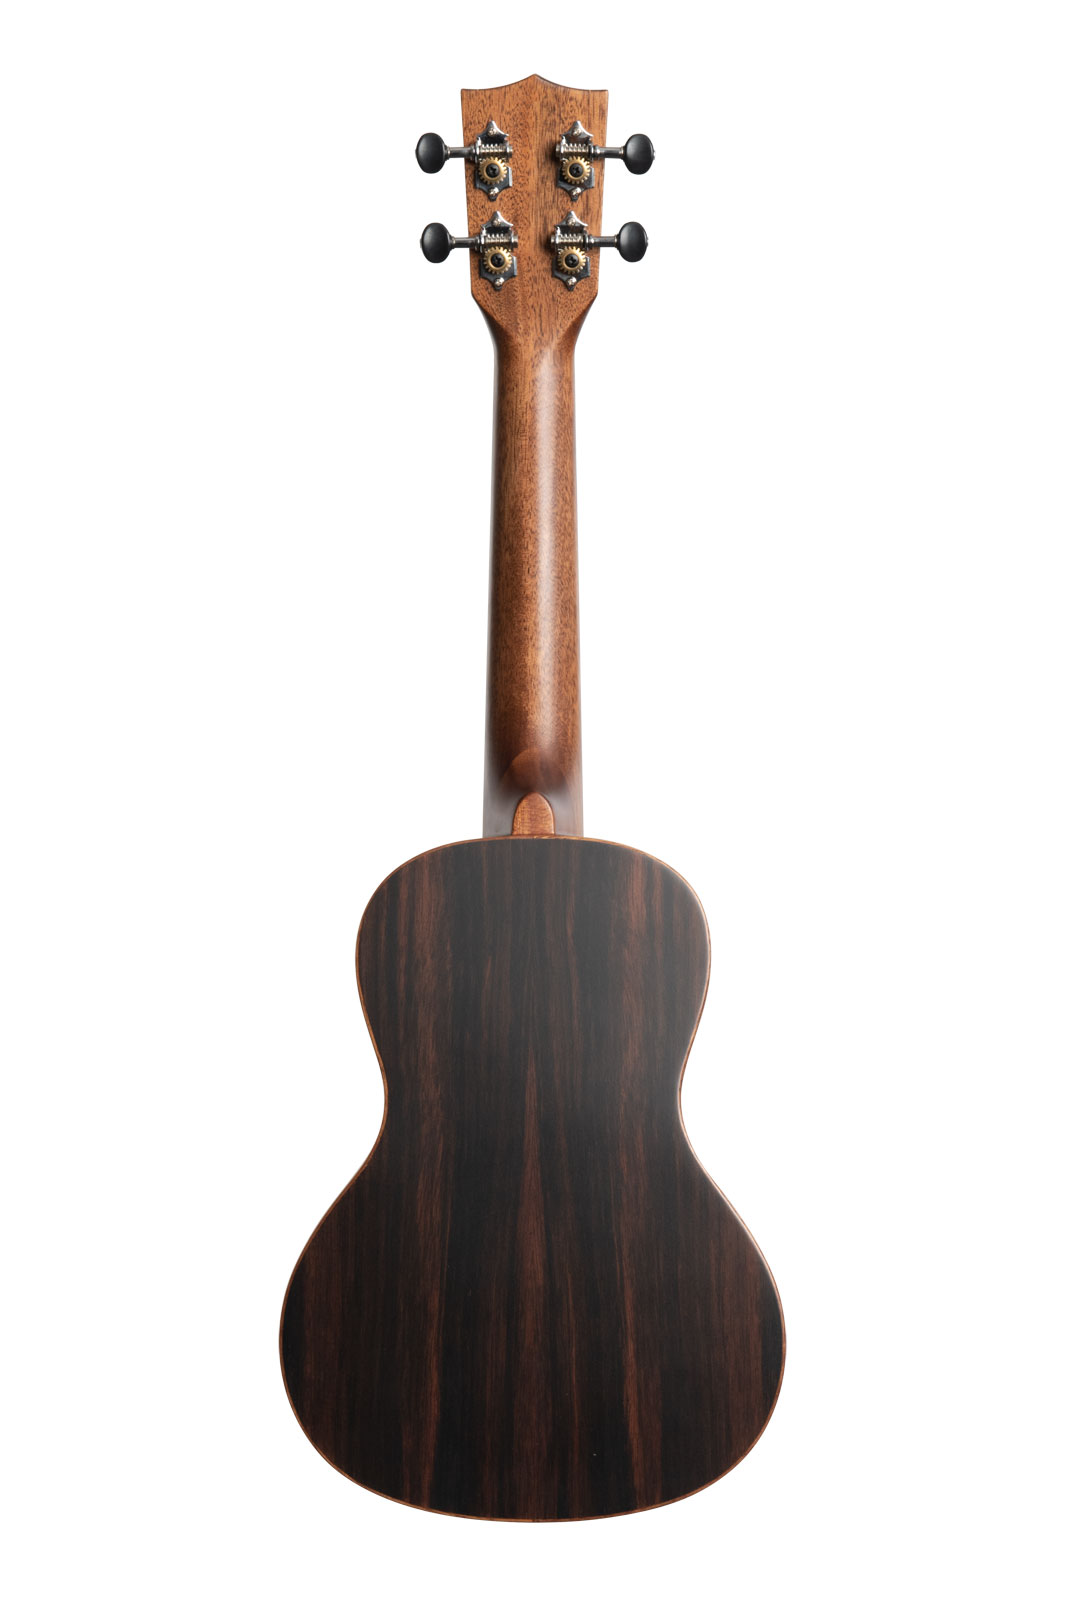 KA-SSEBY-C - SOLID SPRUCE TOP EBONY